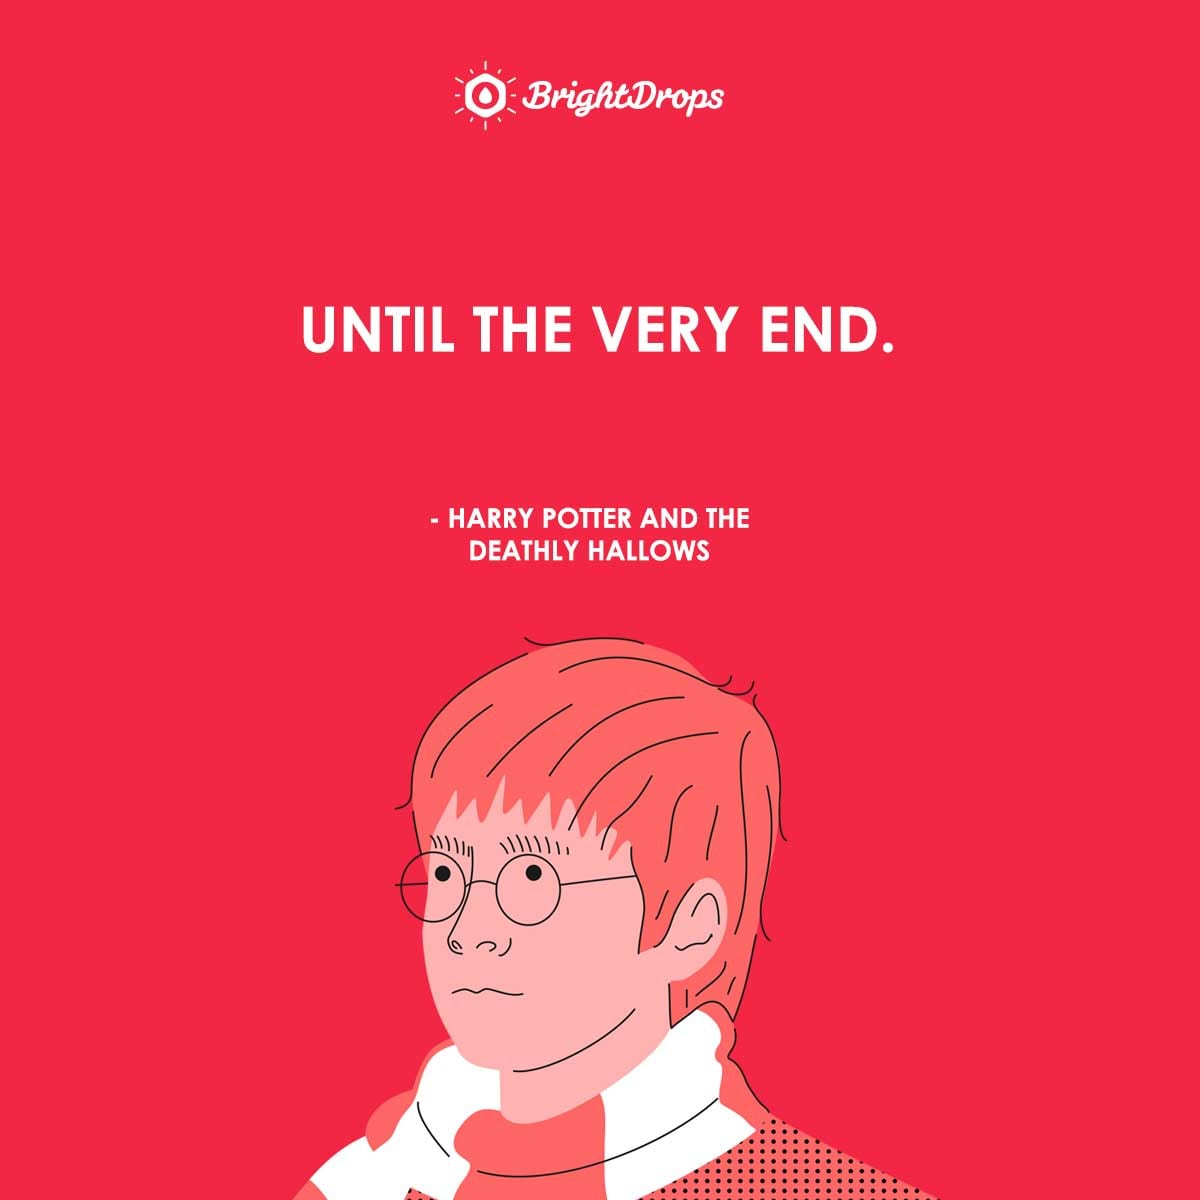 Until the very end. - Harry Potter and the Deathly Hallows